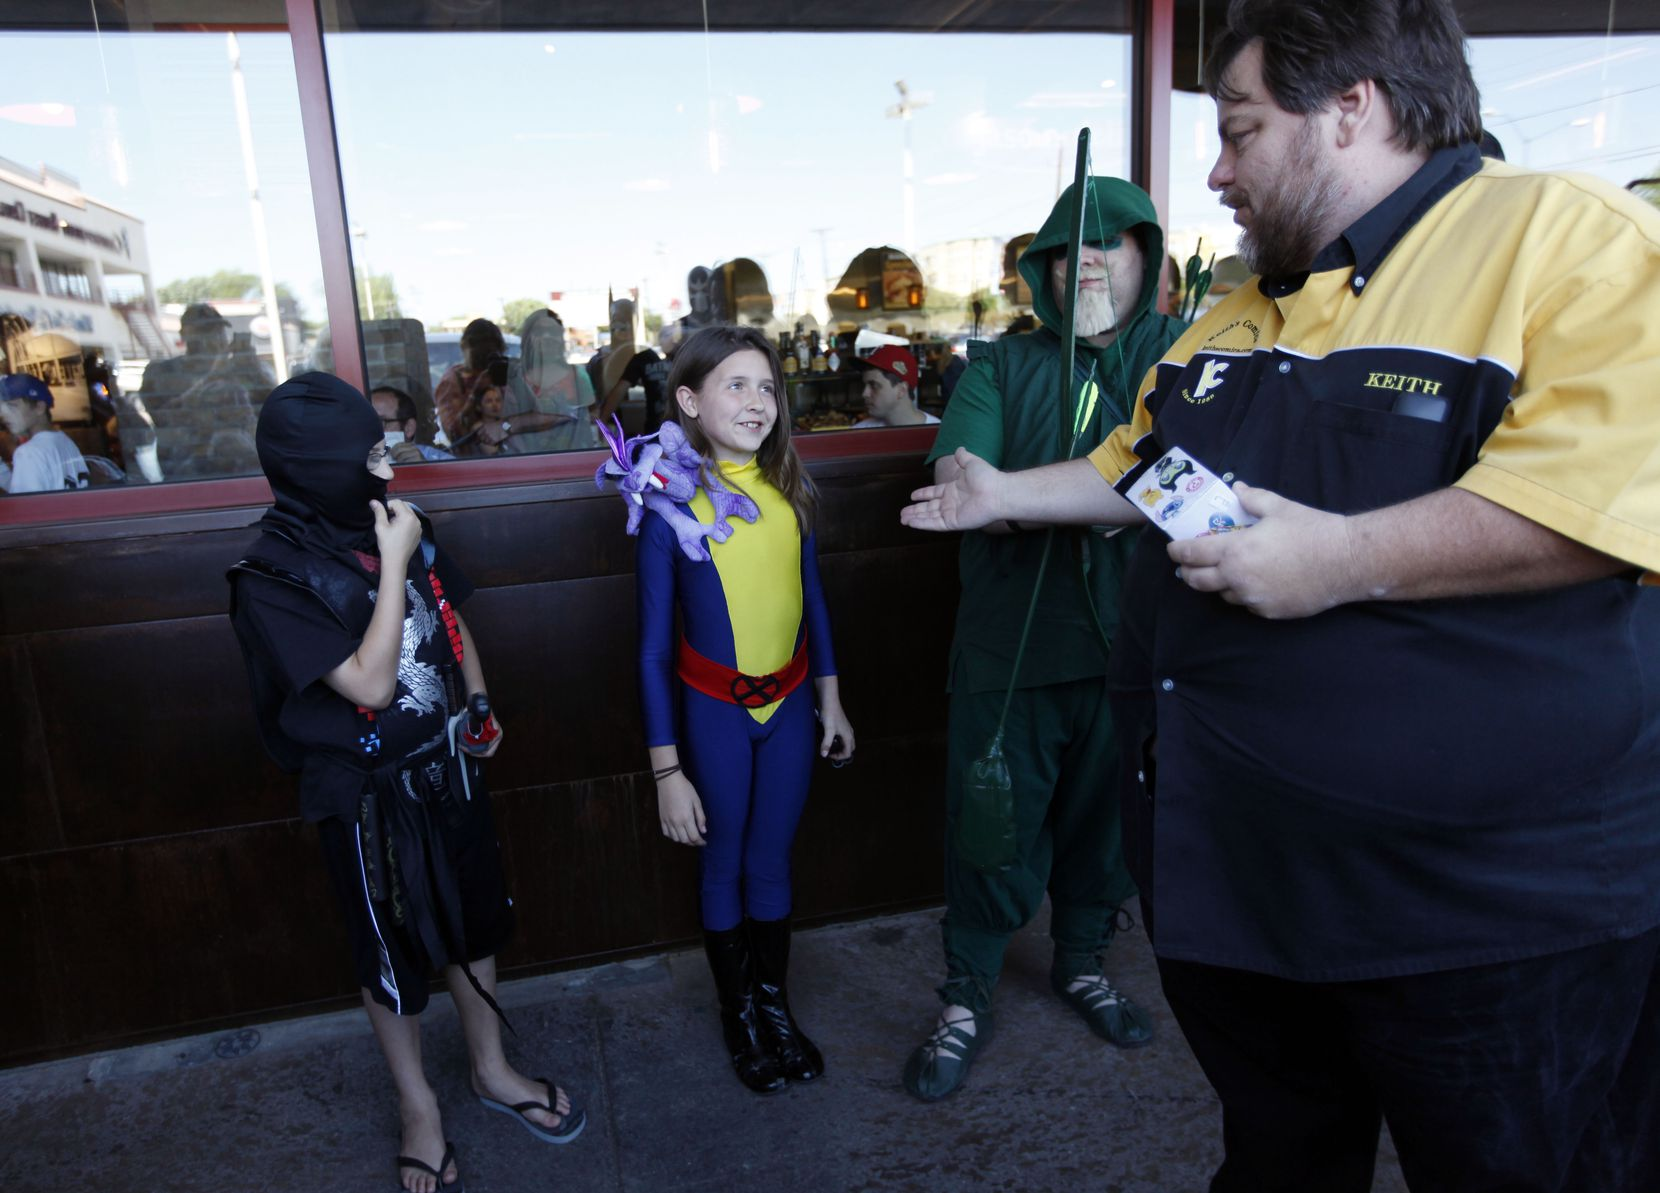 Keith Colvin, right, owner of Keith's Comics awarded Reese Kirkham, 9, of Dallas, dressed as comic book character Kitty Pryde, first place in a costume contest during the Free Comic Book Day at Keith's Comics on Mockingbird Lane in Dallas in 2013.